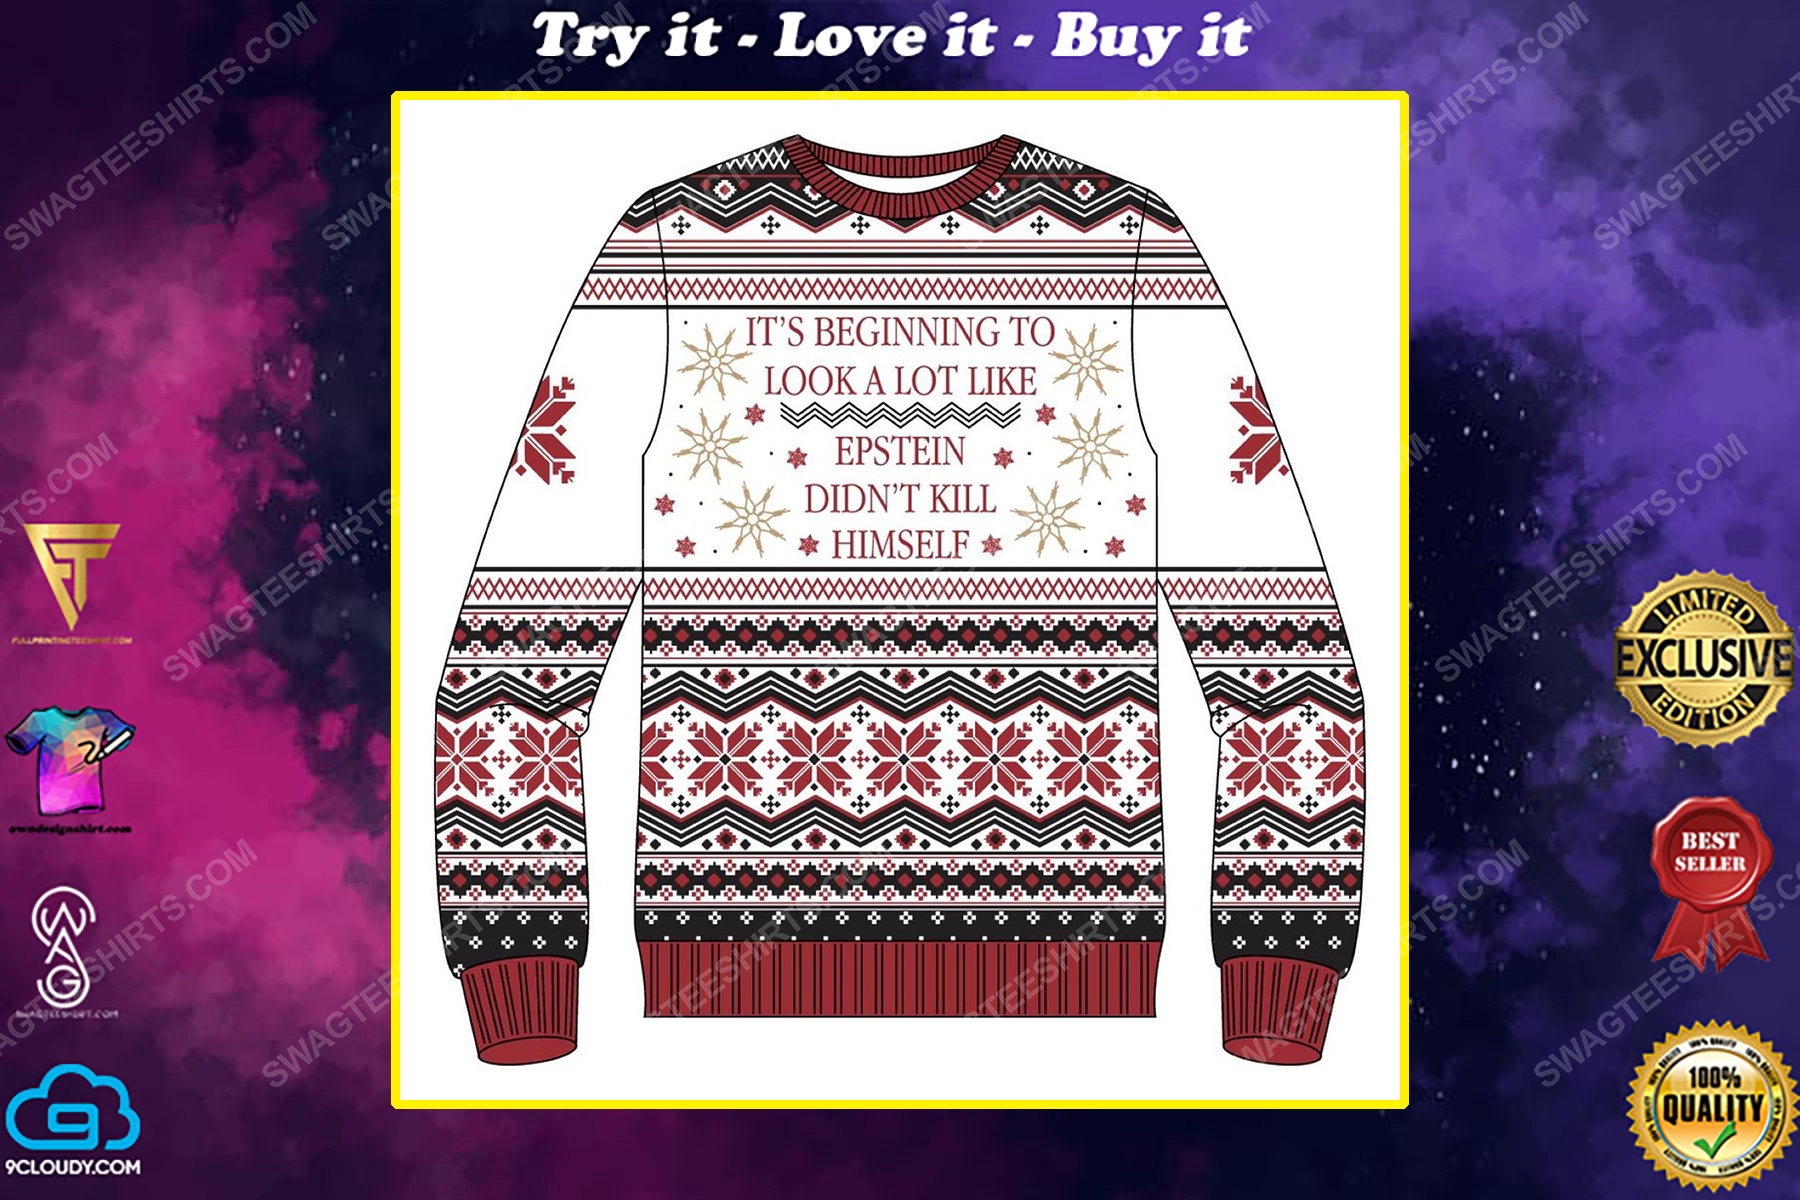 It's beginning to look a lot like epstein didn't kill himself ugly christmas sweater